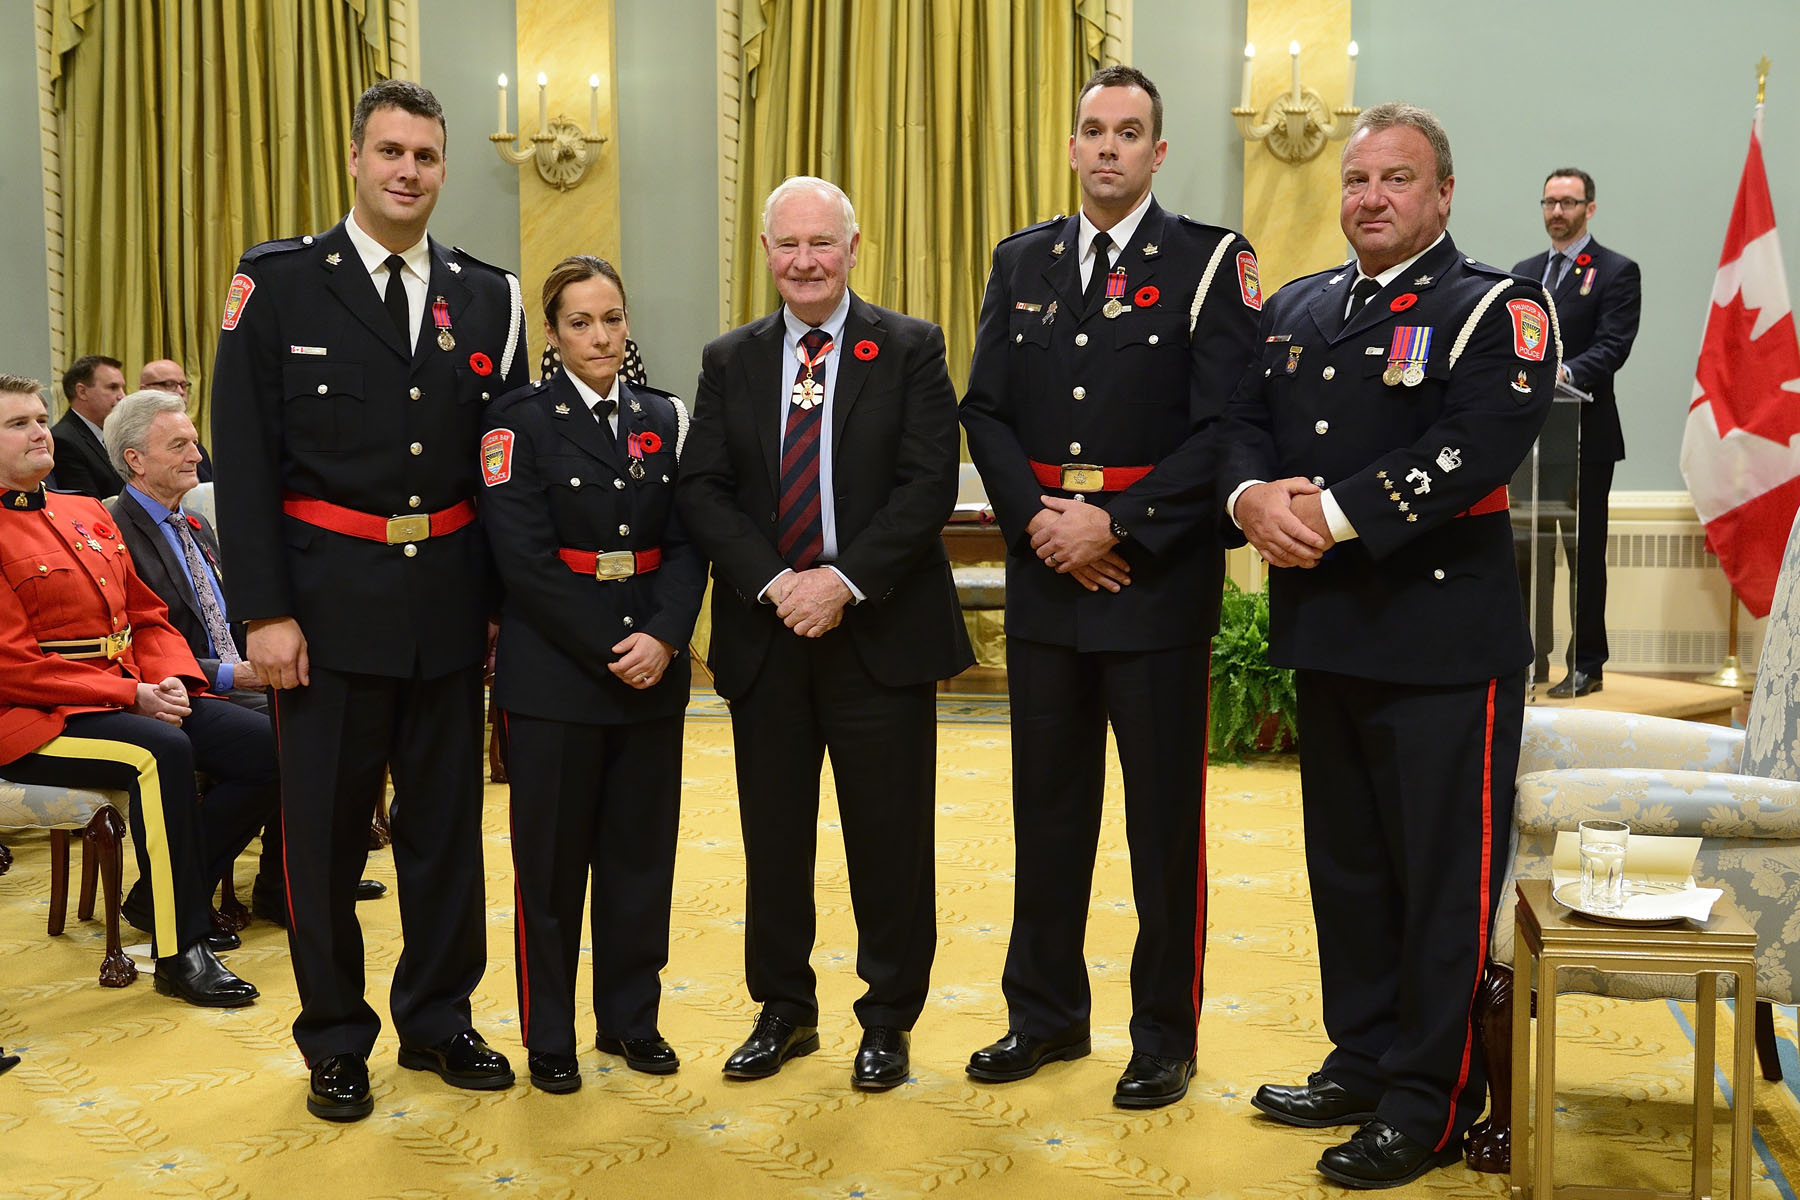 On October 22, 2011, constables James Elvish, M.B. and Bar, Ryan Krupa, M.B., Andrea MacInnis, M.B., and Kristofer Poling, M.B., rescued several people from a burning hotel in Thunder Bay, Ontario. After helping to evacuate occupants from another part of the building, these officers made their way to a three-storey tower attached to the hotel. Without any protective clothing or breathing apparatus, they made their way up to the third floor through the thick, black smoke. They checked every room and assisted the remaining occupants outside to safety. 